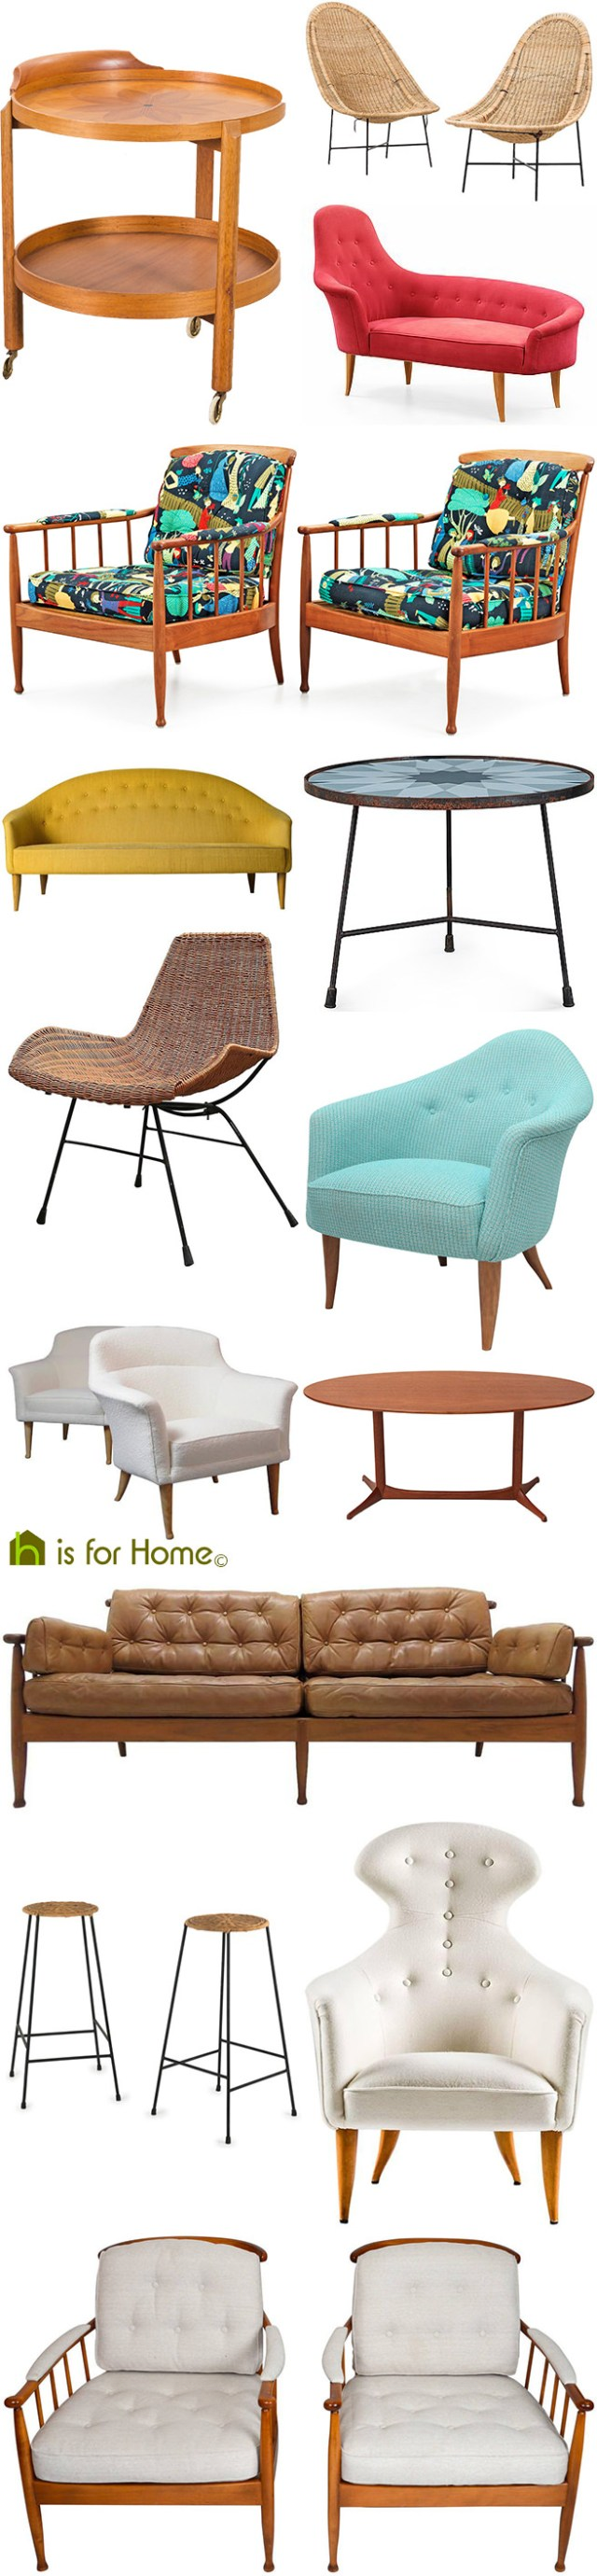 Mosaic of Kerstin Hörlin-Holmquist furniture designs | H is for Home